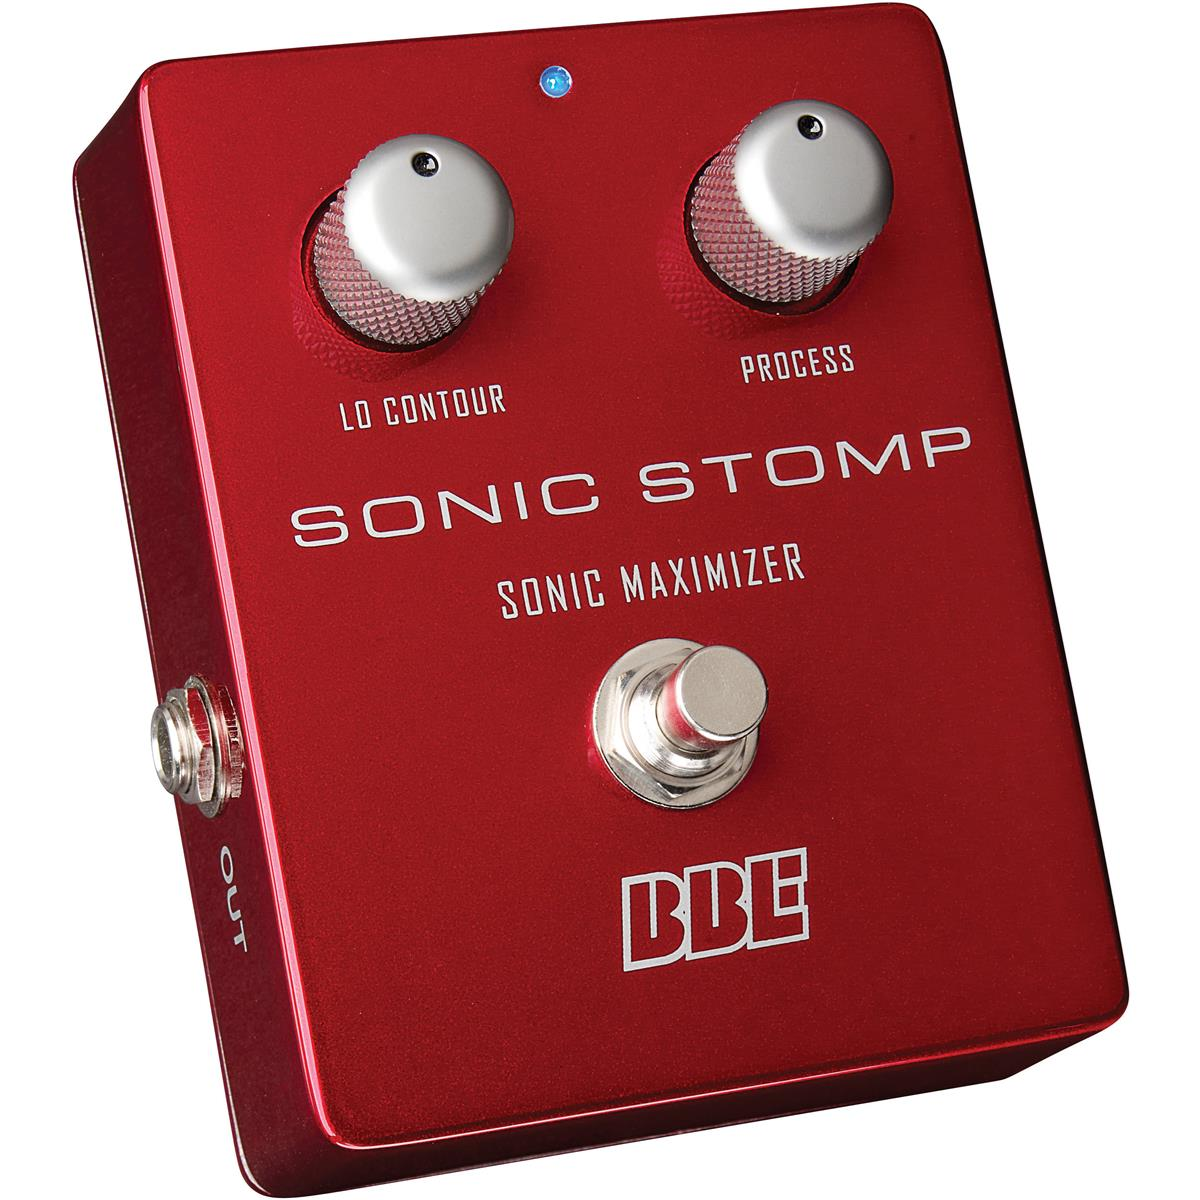 BBE SONIC STOMP new!